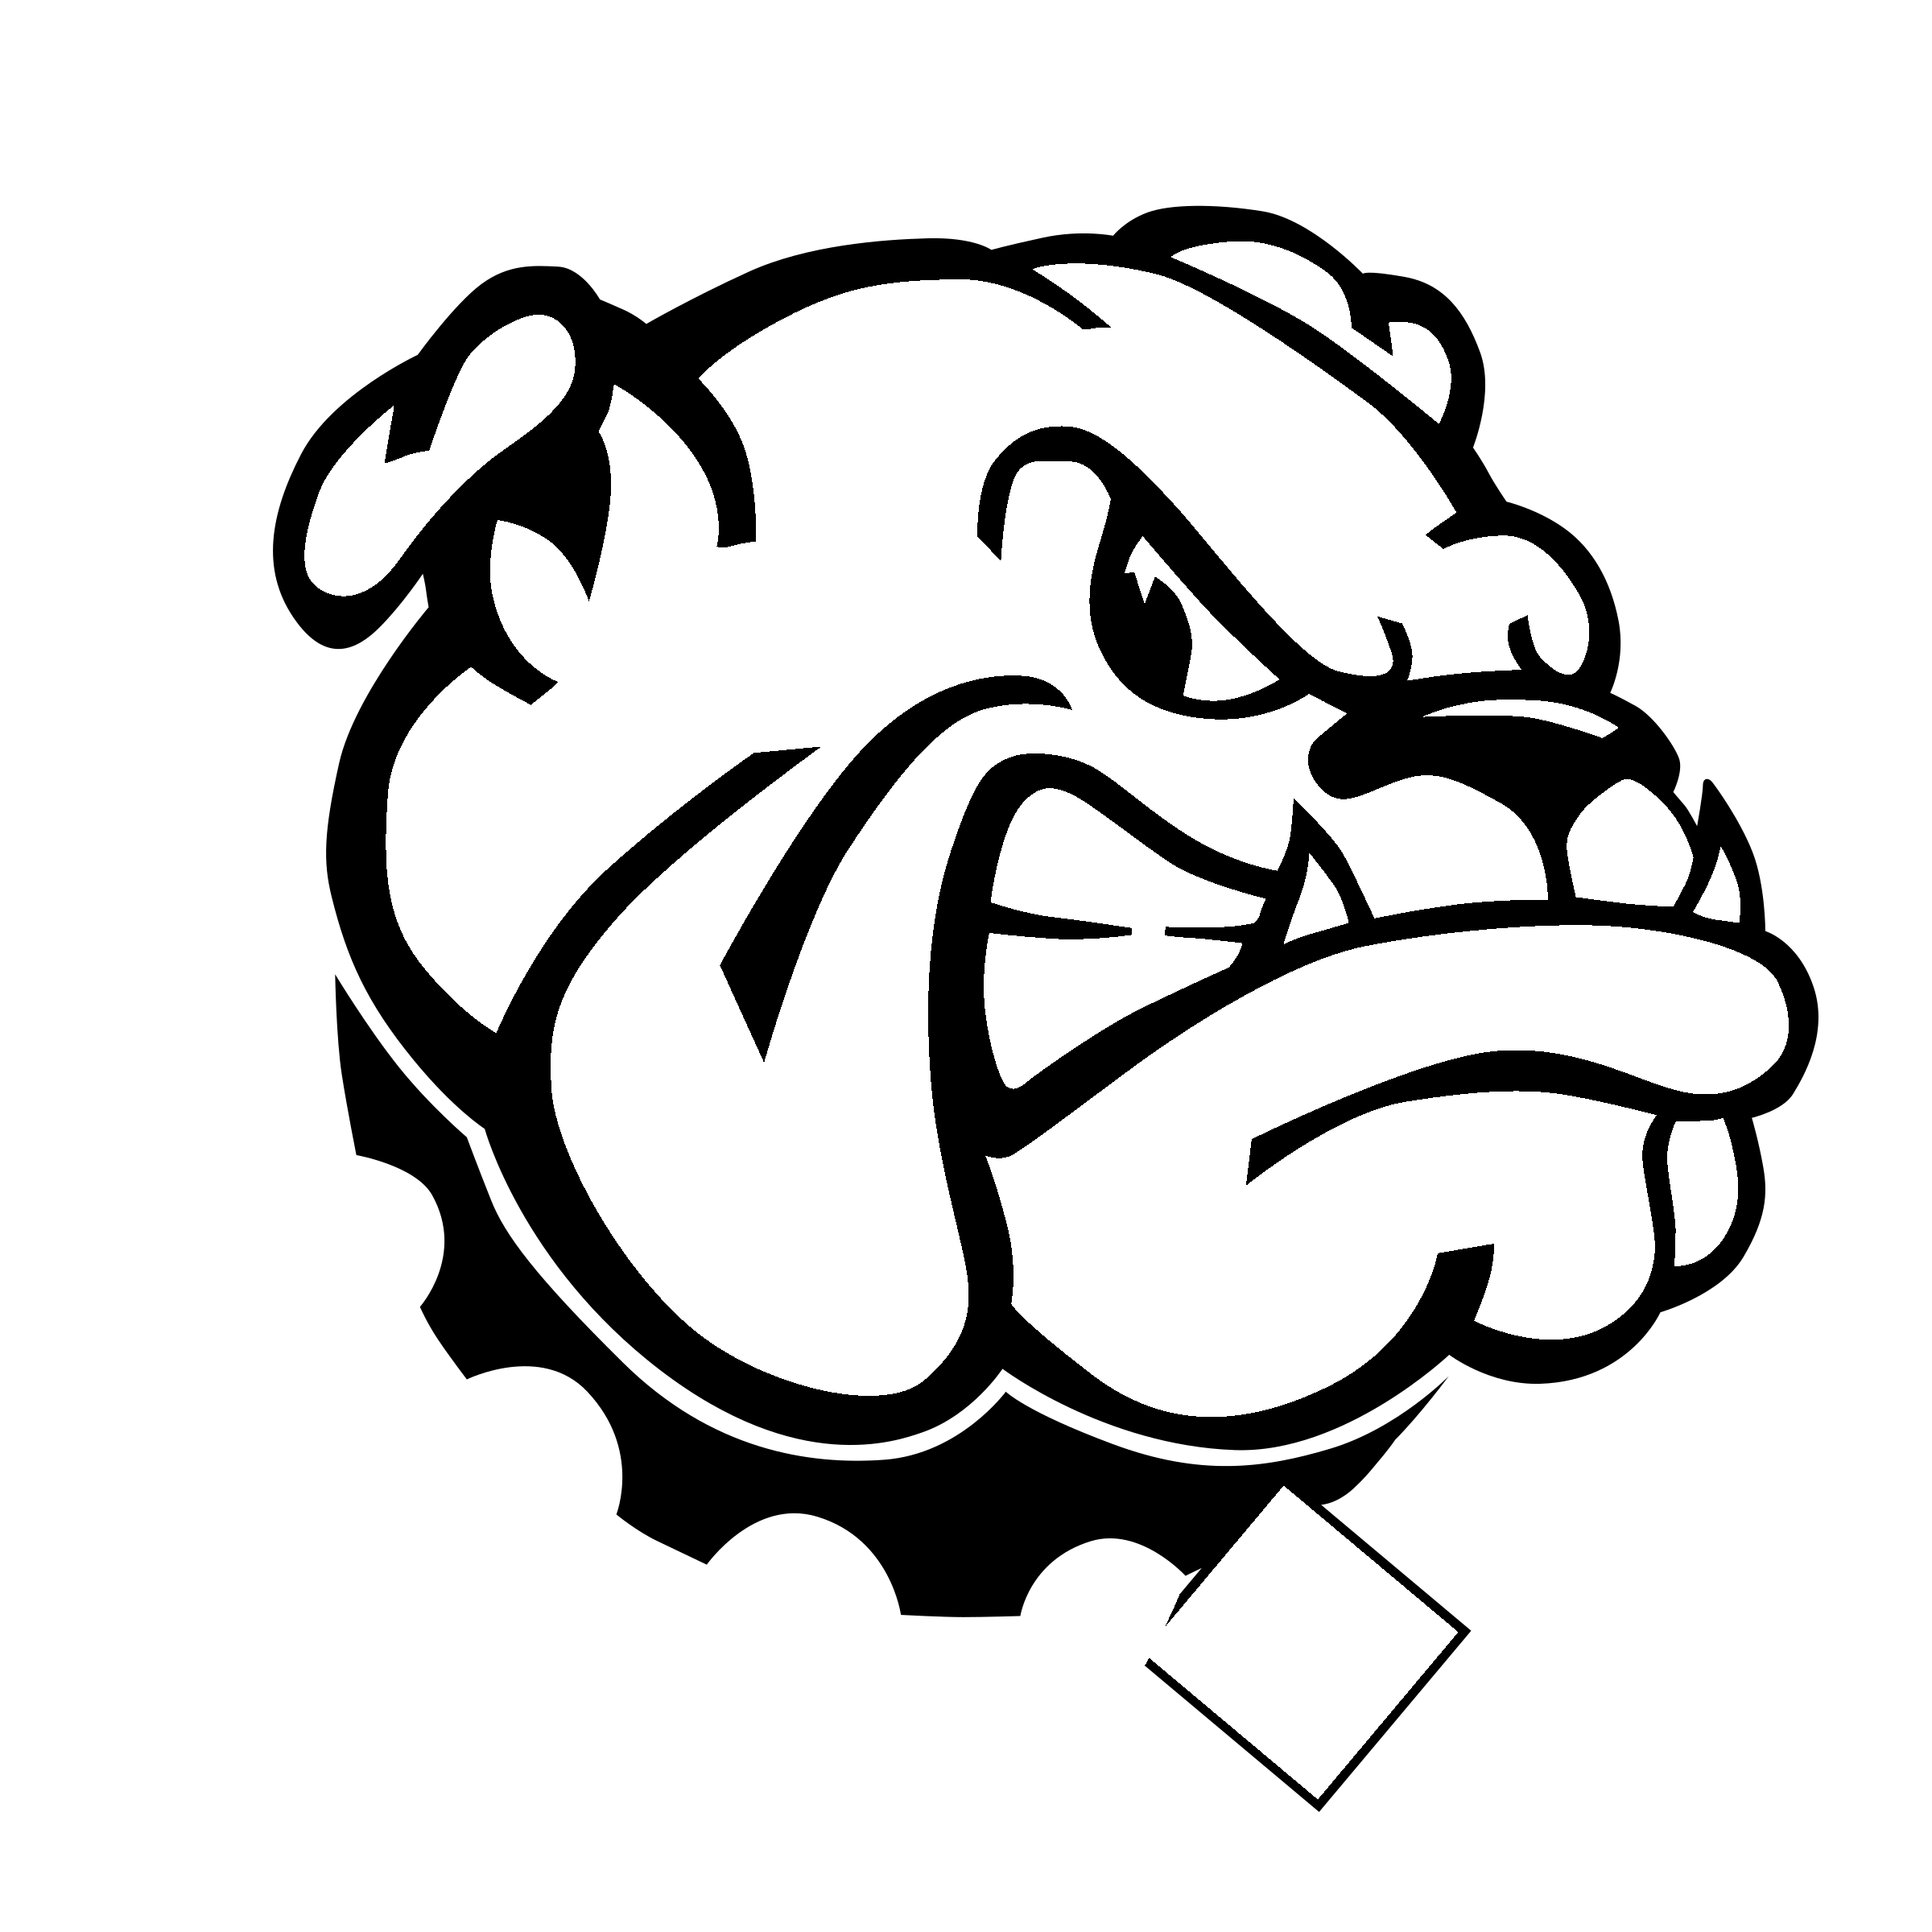 Georgia bulldog clipart clipart images gallery for free download.